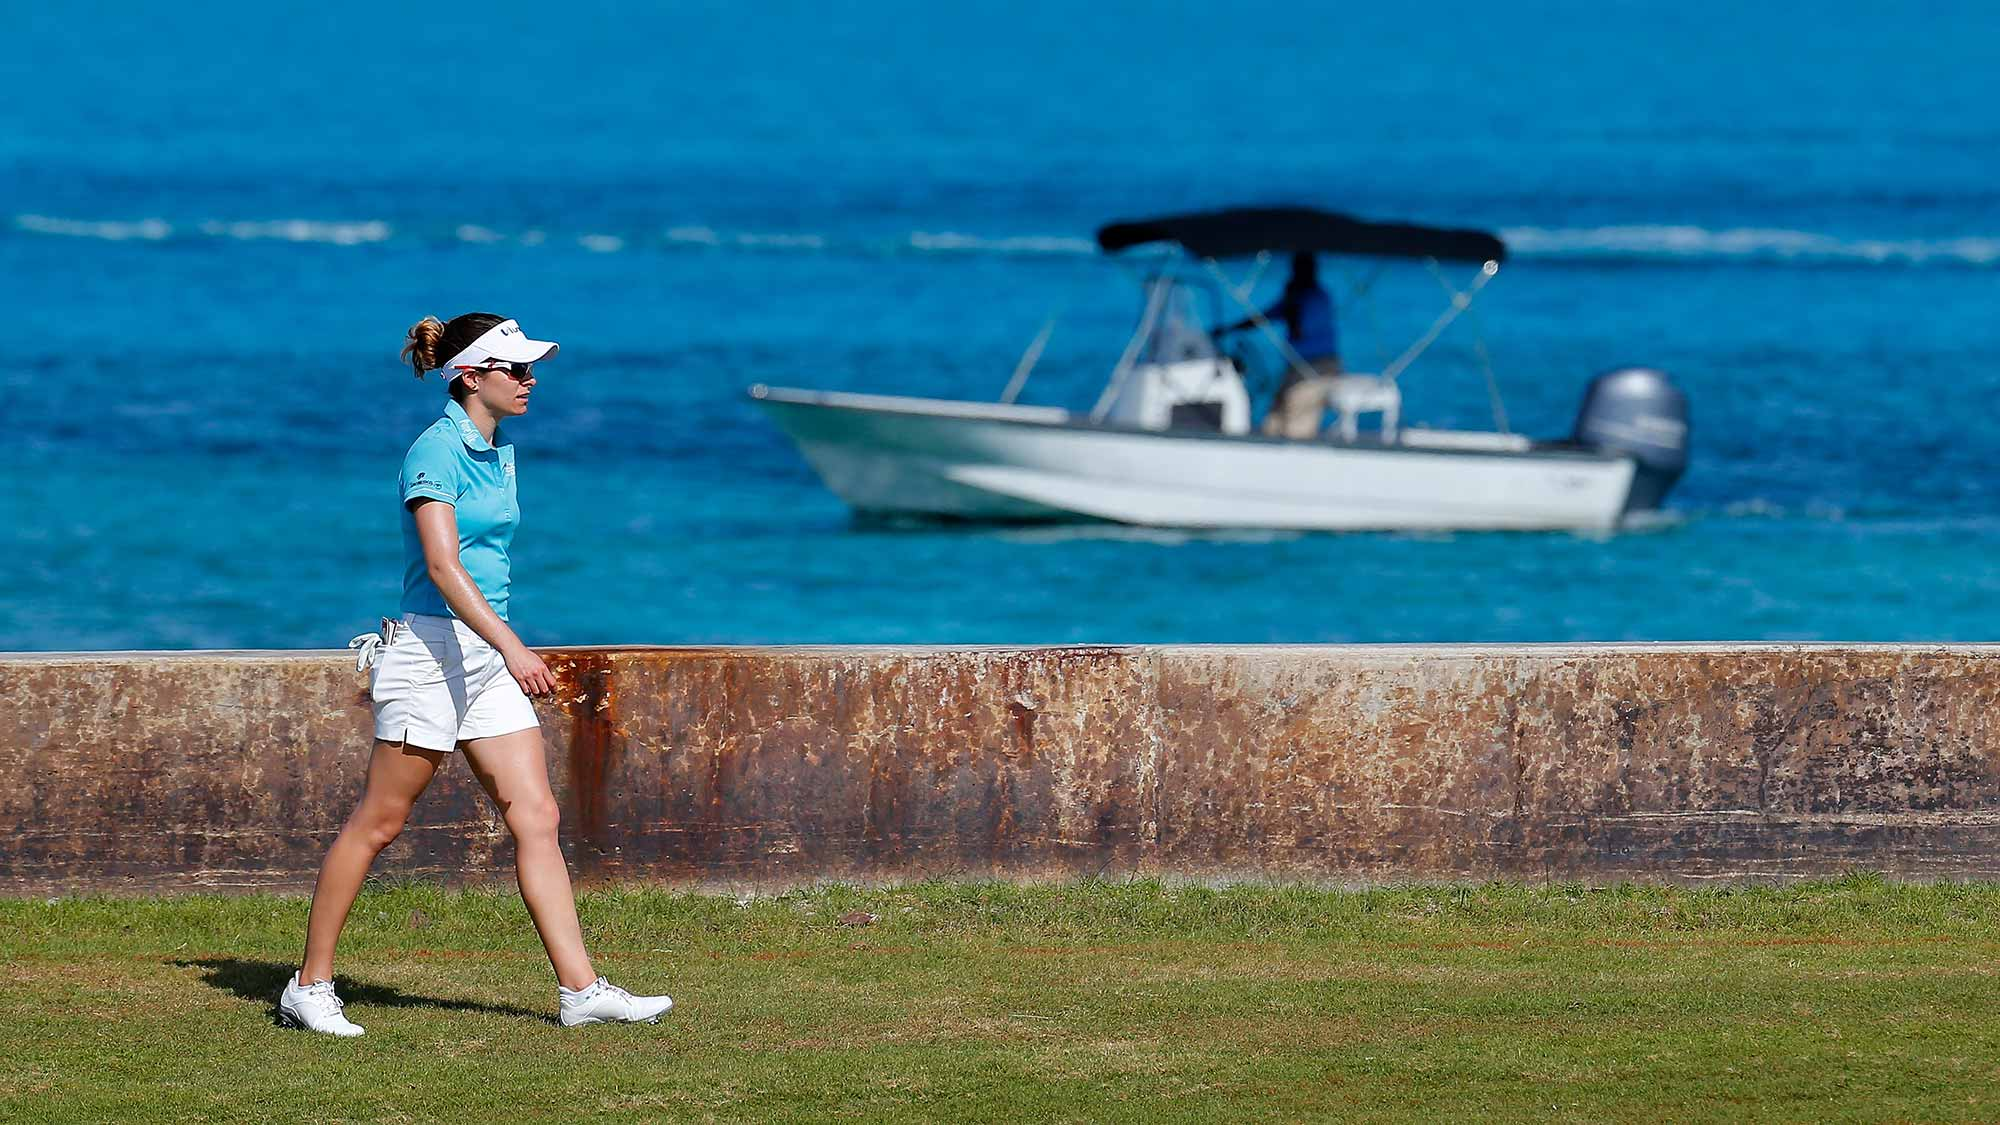 Gaby Lopez of Mexico walks down the eighth hole during the first round of the Pure Silk Bahamas LPGA Classic at the Ocean Club Golf Course